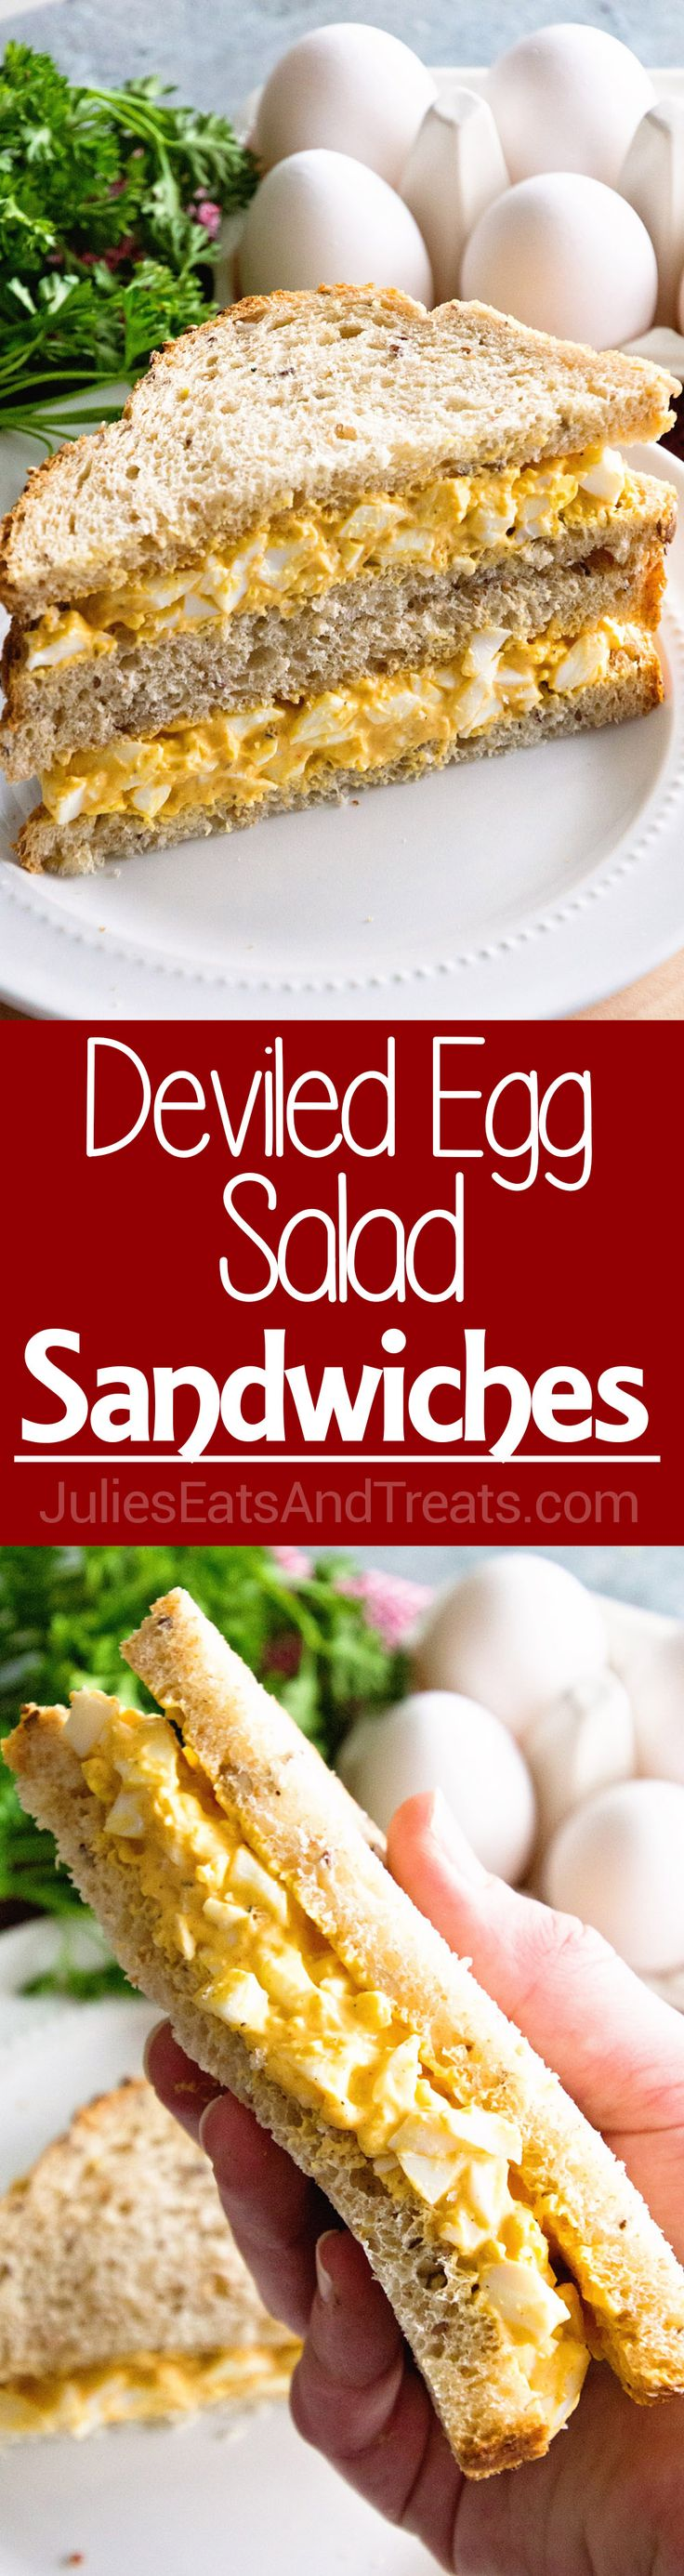 Deviled Egg Salad Sandwiches ~ Your Favorite Deviled Eggs Piled onto a Sandwich! Perfect Recipe for a Quick and Easy Lunch!